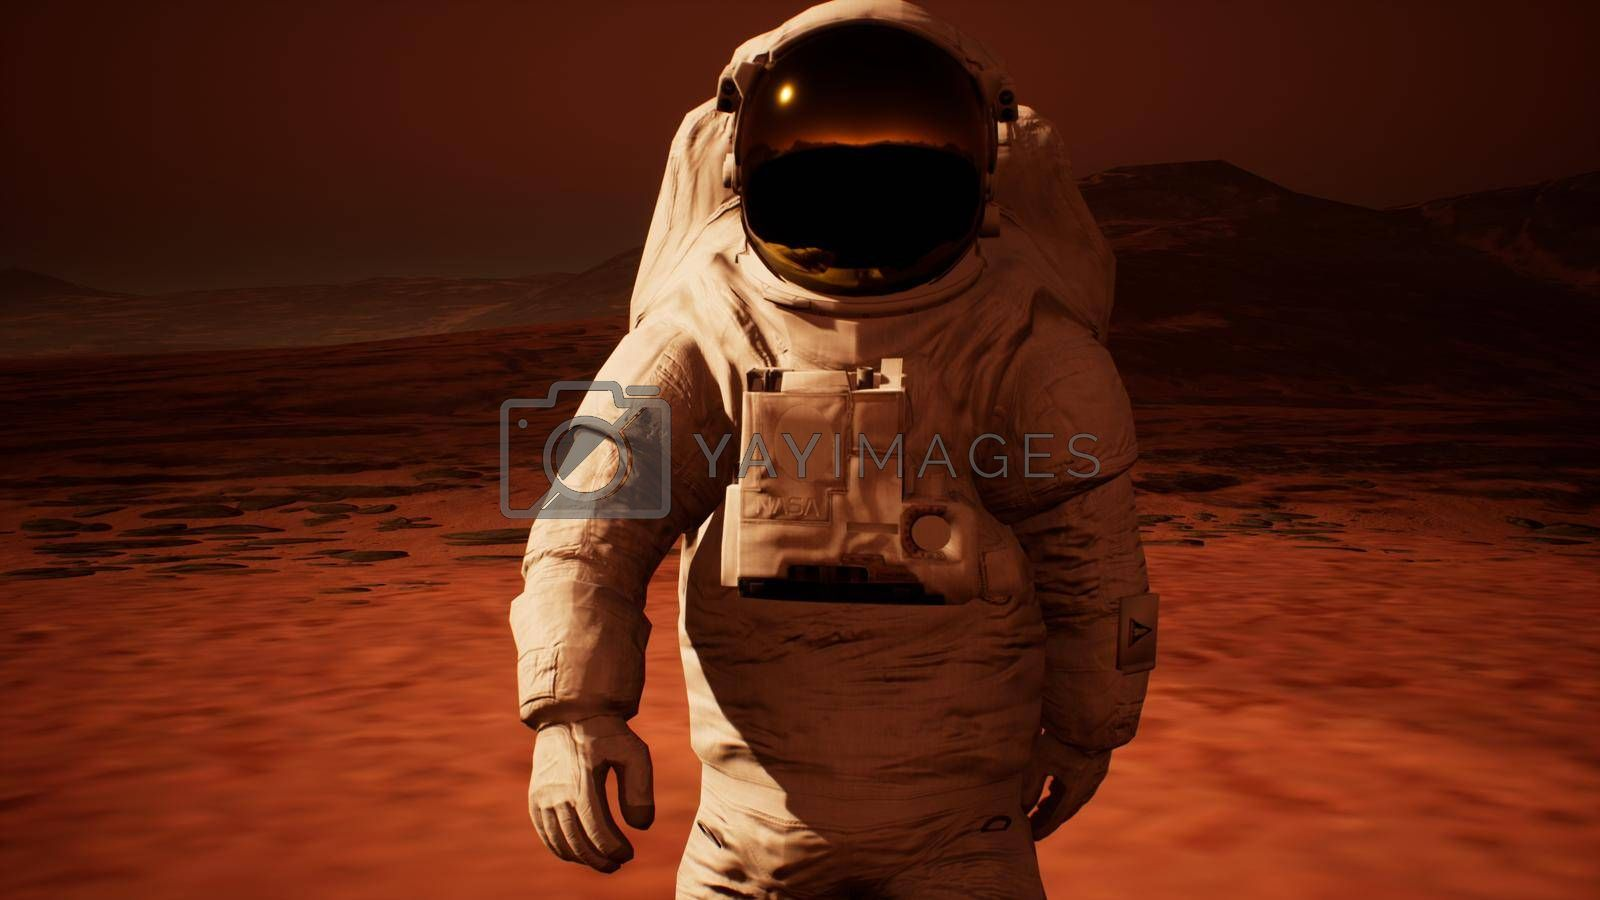 Astronaut in spacesuit confidently walk on Mars in search of life.